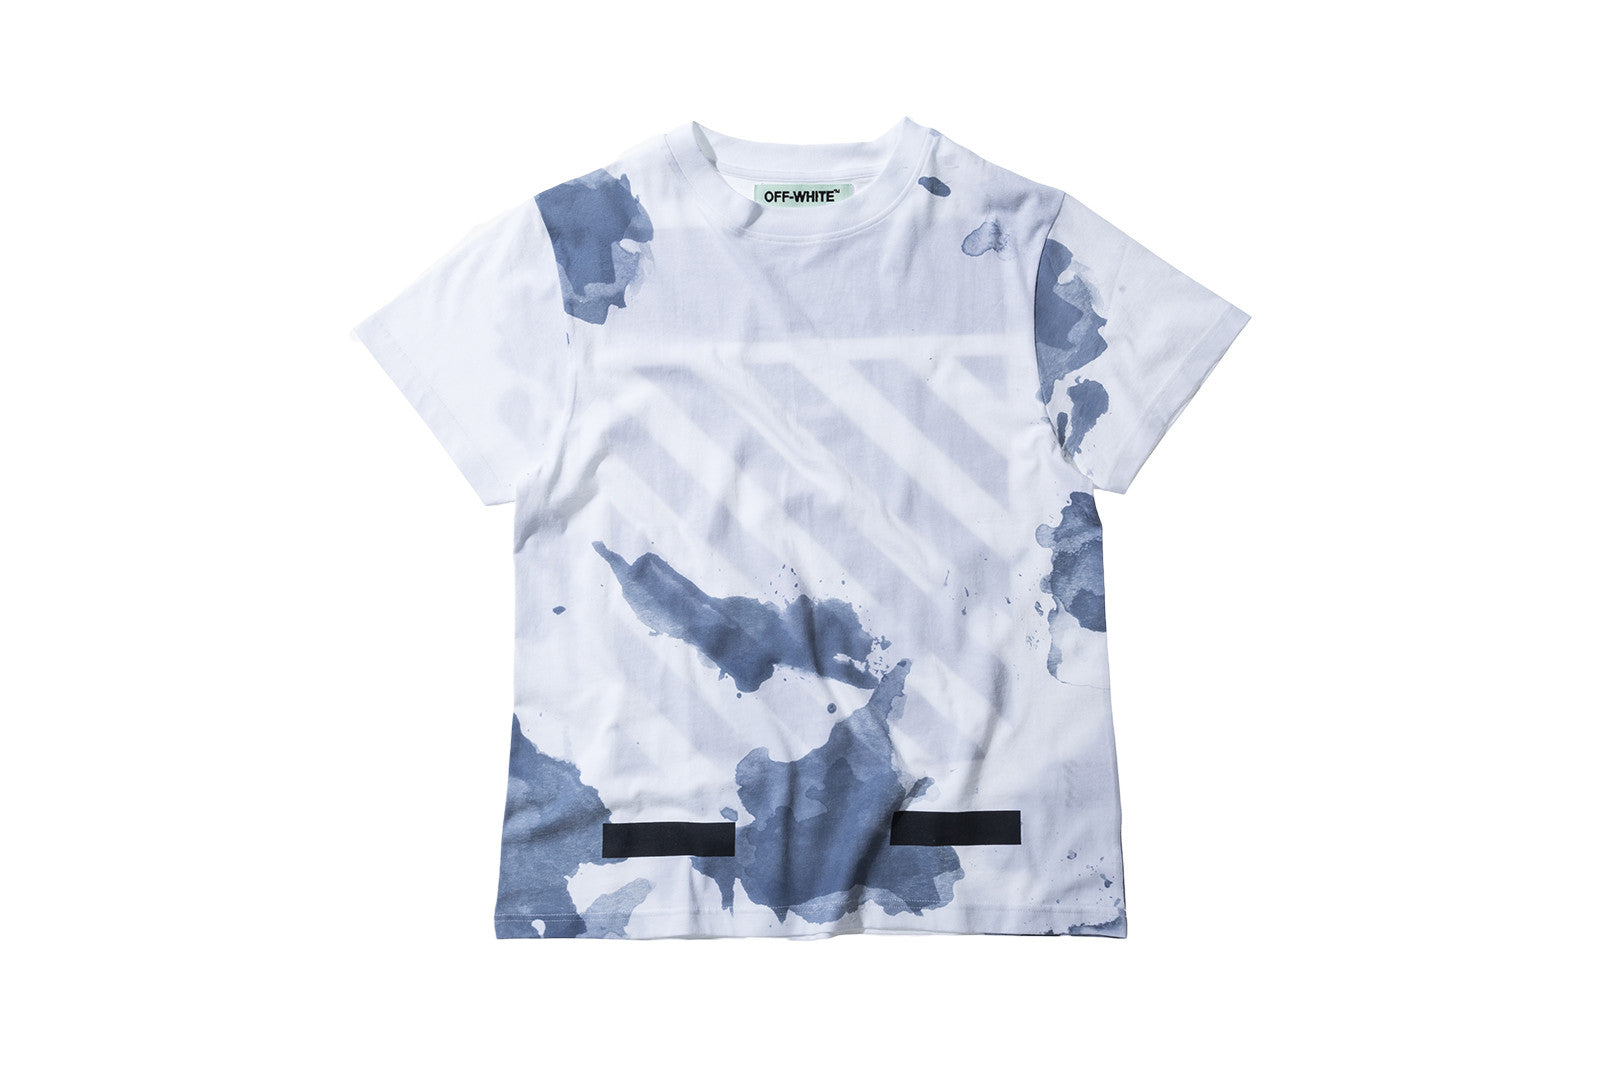 Off-White Liquid Spots Tee - Dark Blue